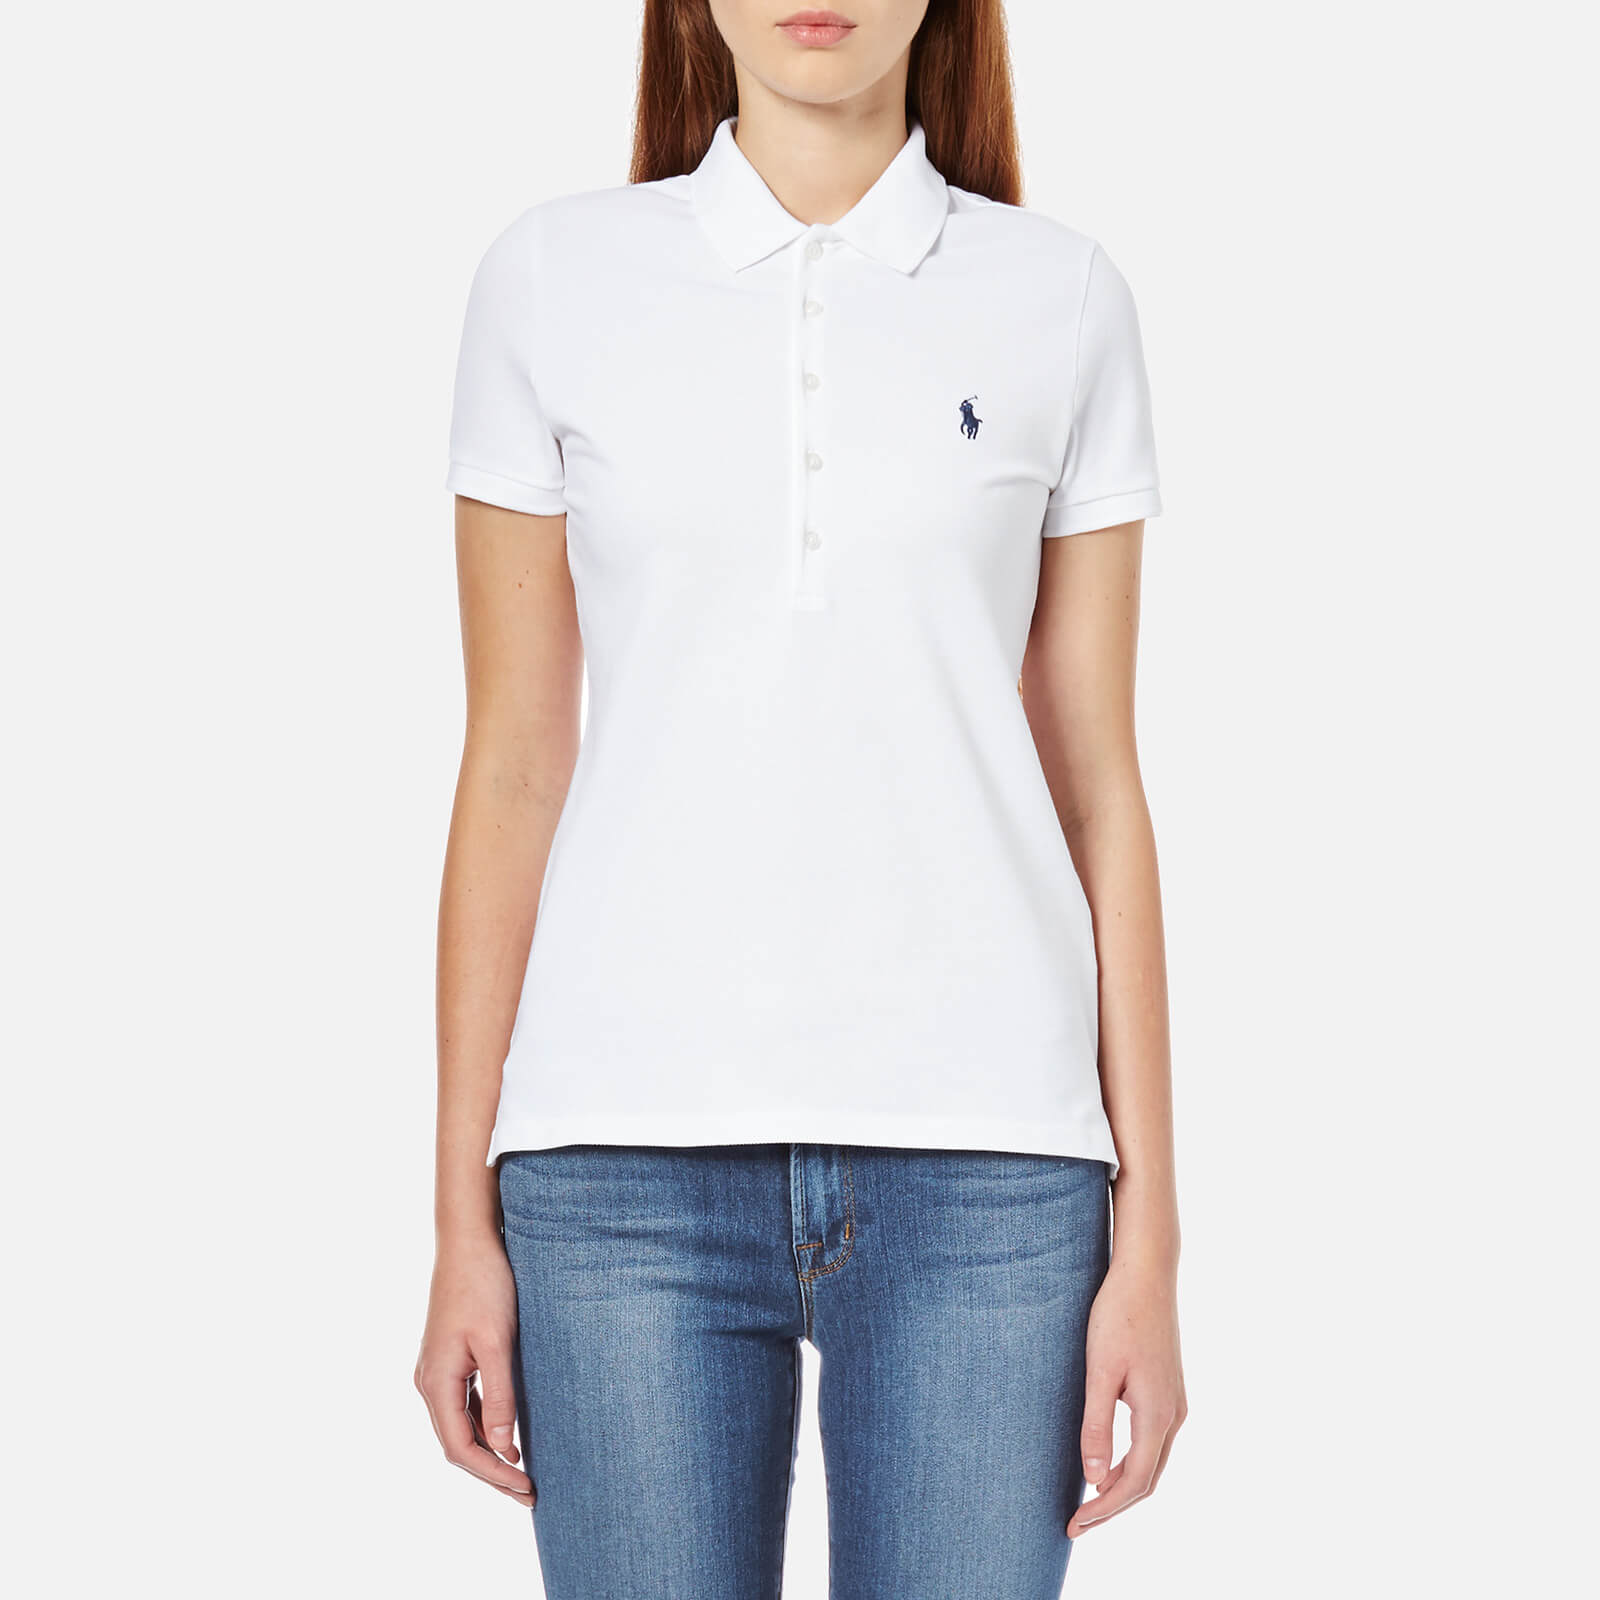 b87c9d0ebb852 Polo Ralph Lauren Women s Julie Polo Shirt - White - Free UK Delivery over  £50